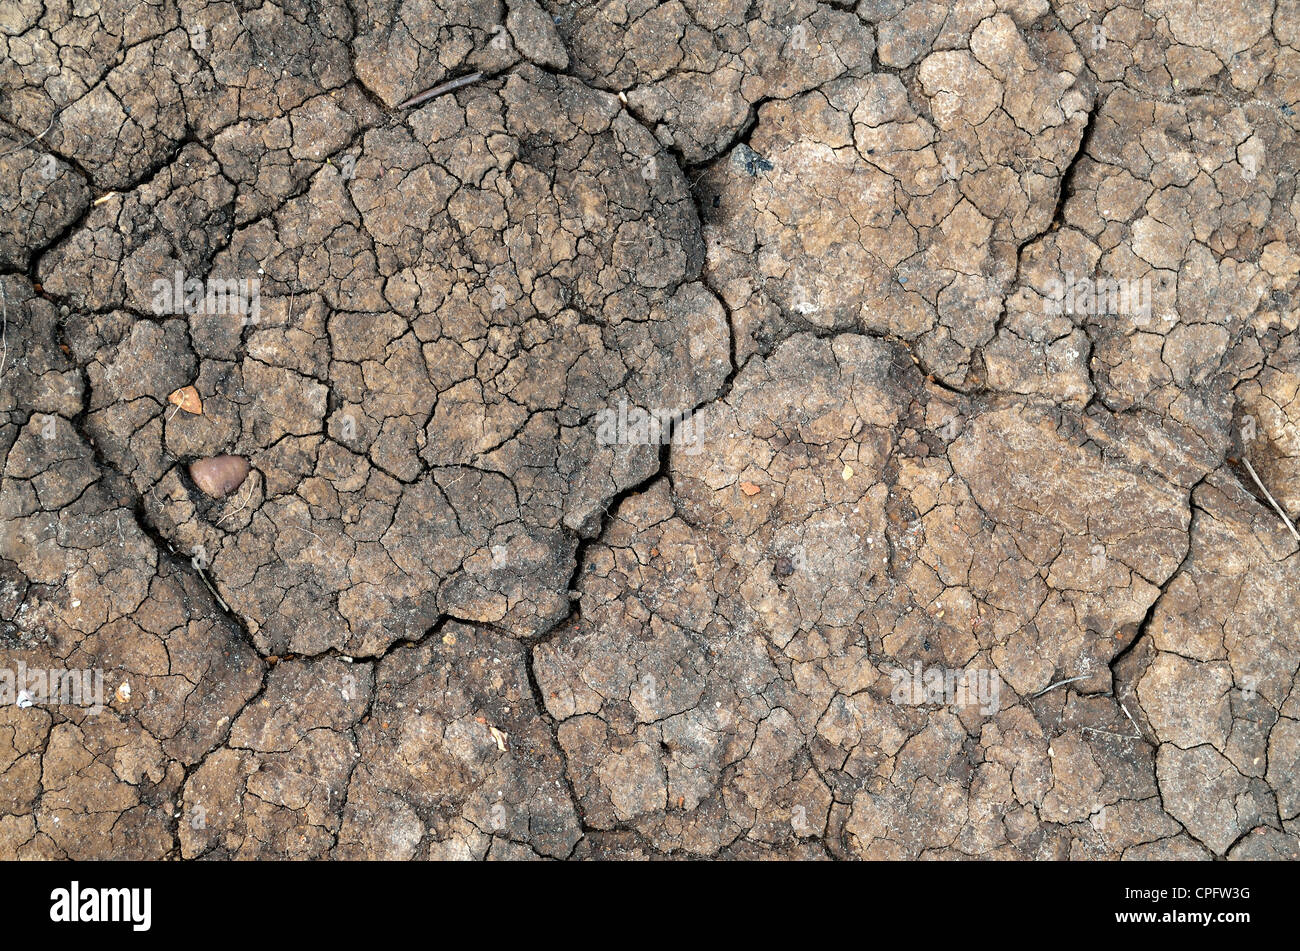 Dried and cracking mud texture from the seashore - Stock Image